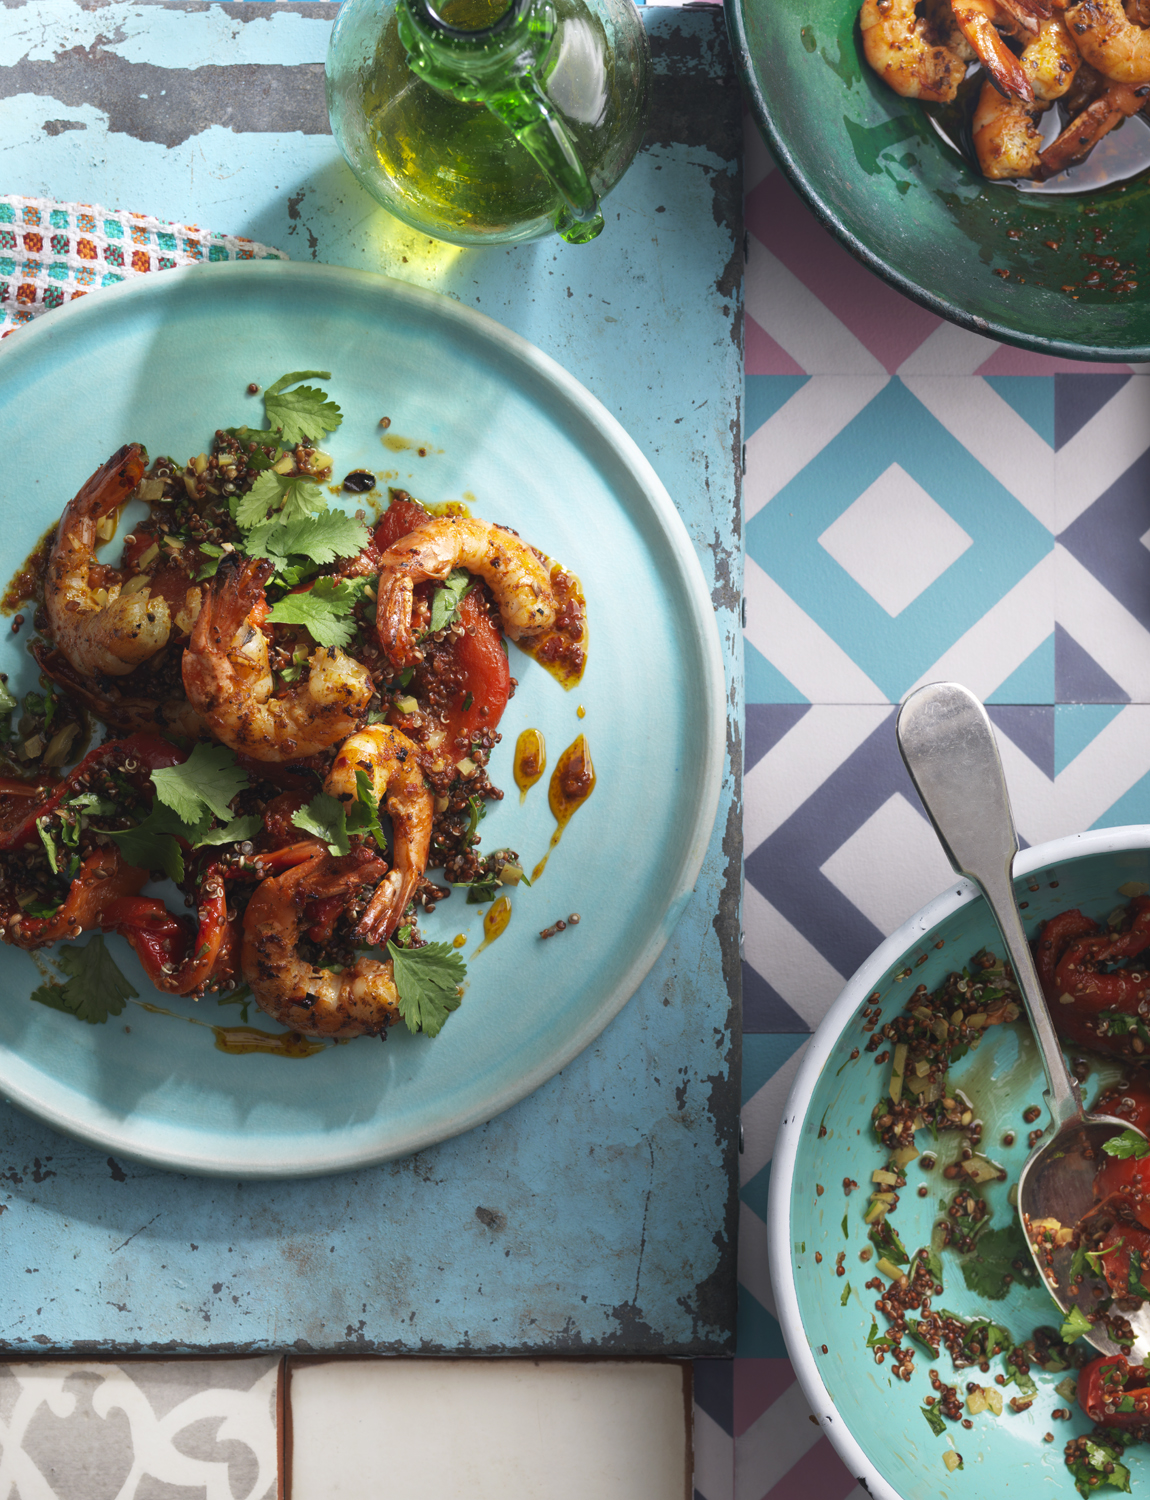 RED_Ottolenghi_May_29.1.14 - 072.jpg